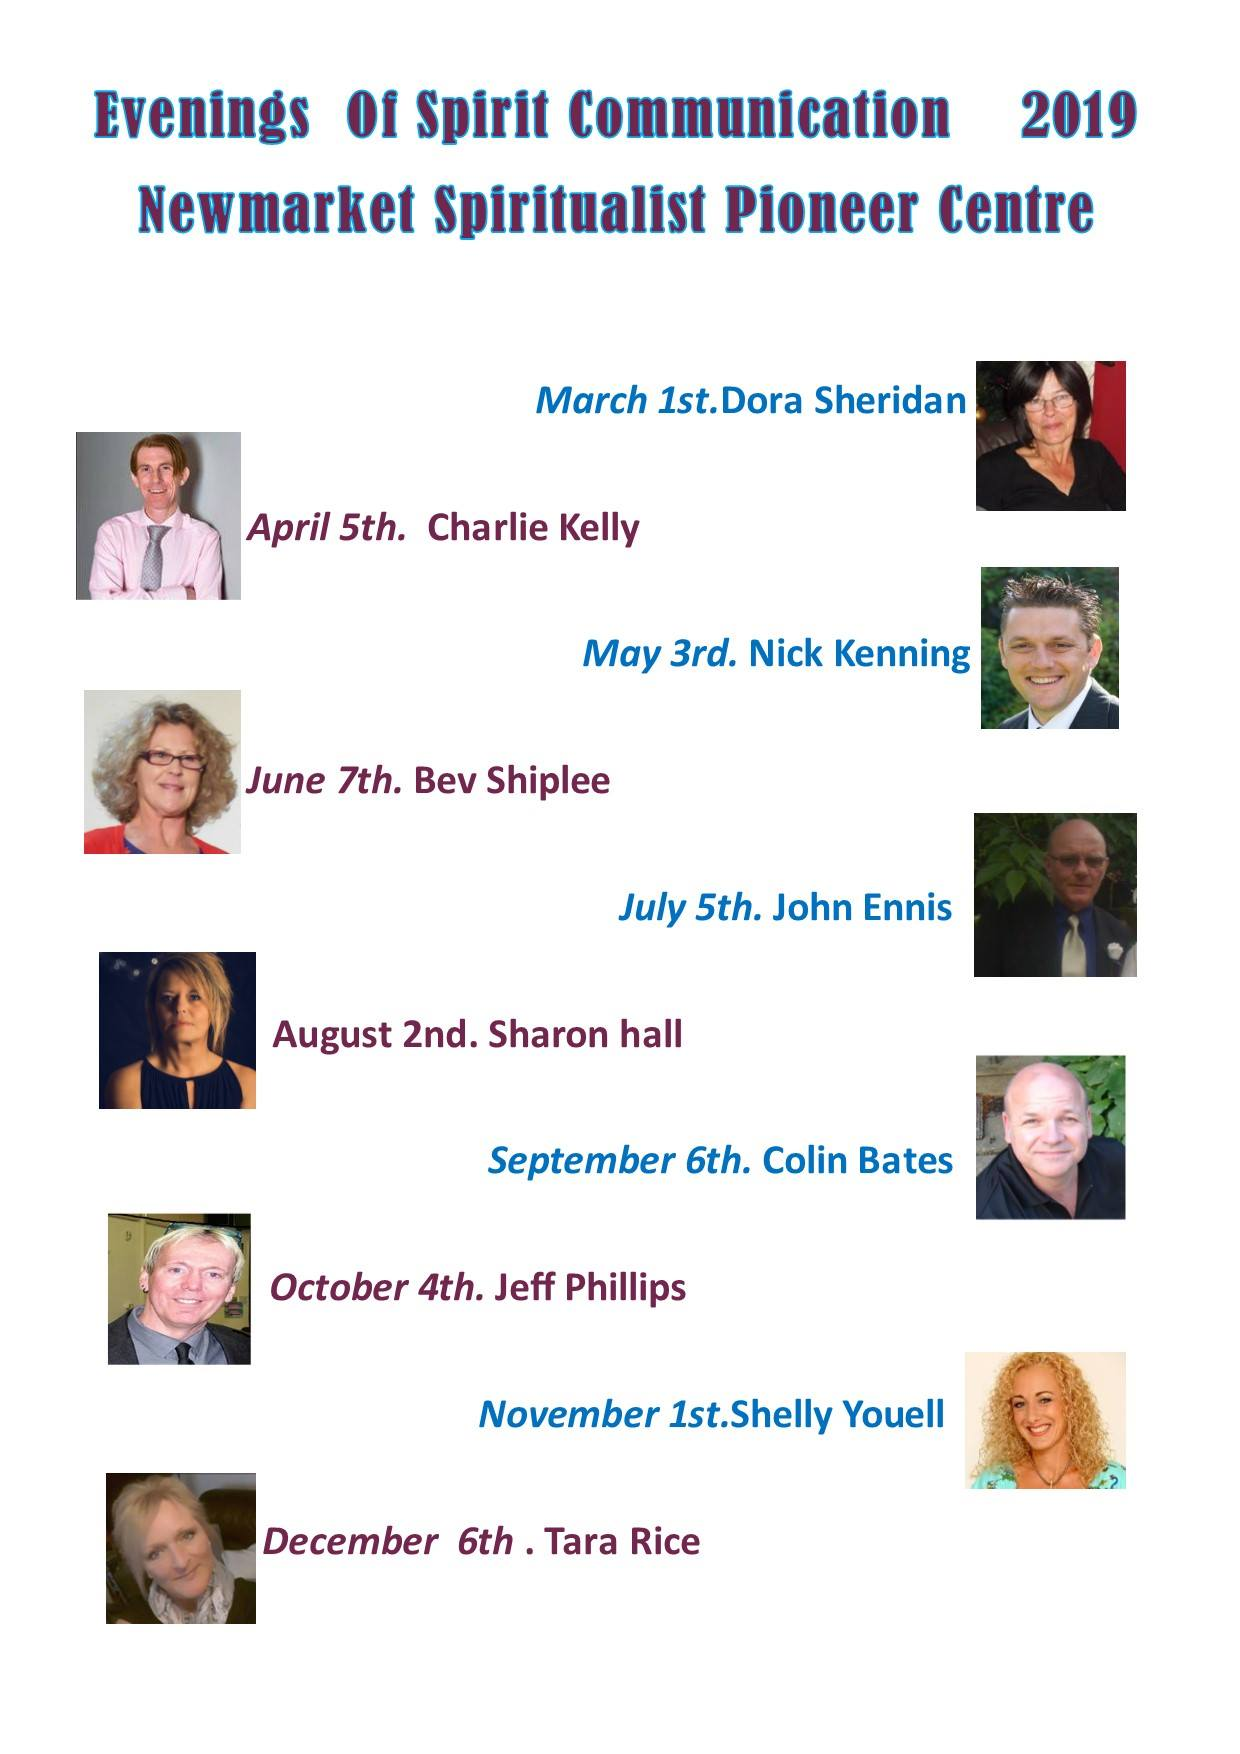 March 1st Dora Sheridan; April 5th Charlie Kelly; May 3rd Nick Kenning; June 7th Bev Shiplee; July 5th John Ennis; August 2nd Sharon Hall; September 6th Colin Bates; October 4th Jeff Phillips; November 1st Shelly Youell; December 6th Tara Rice